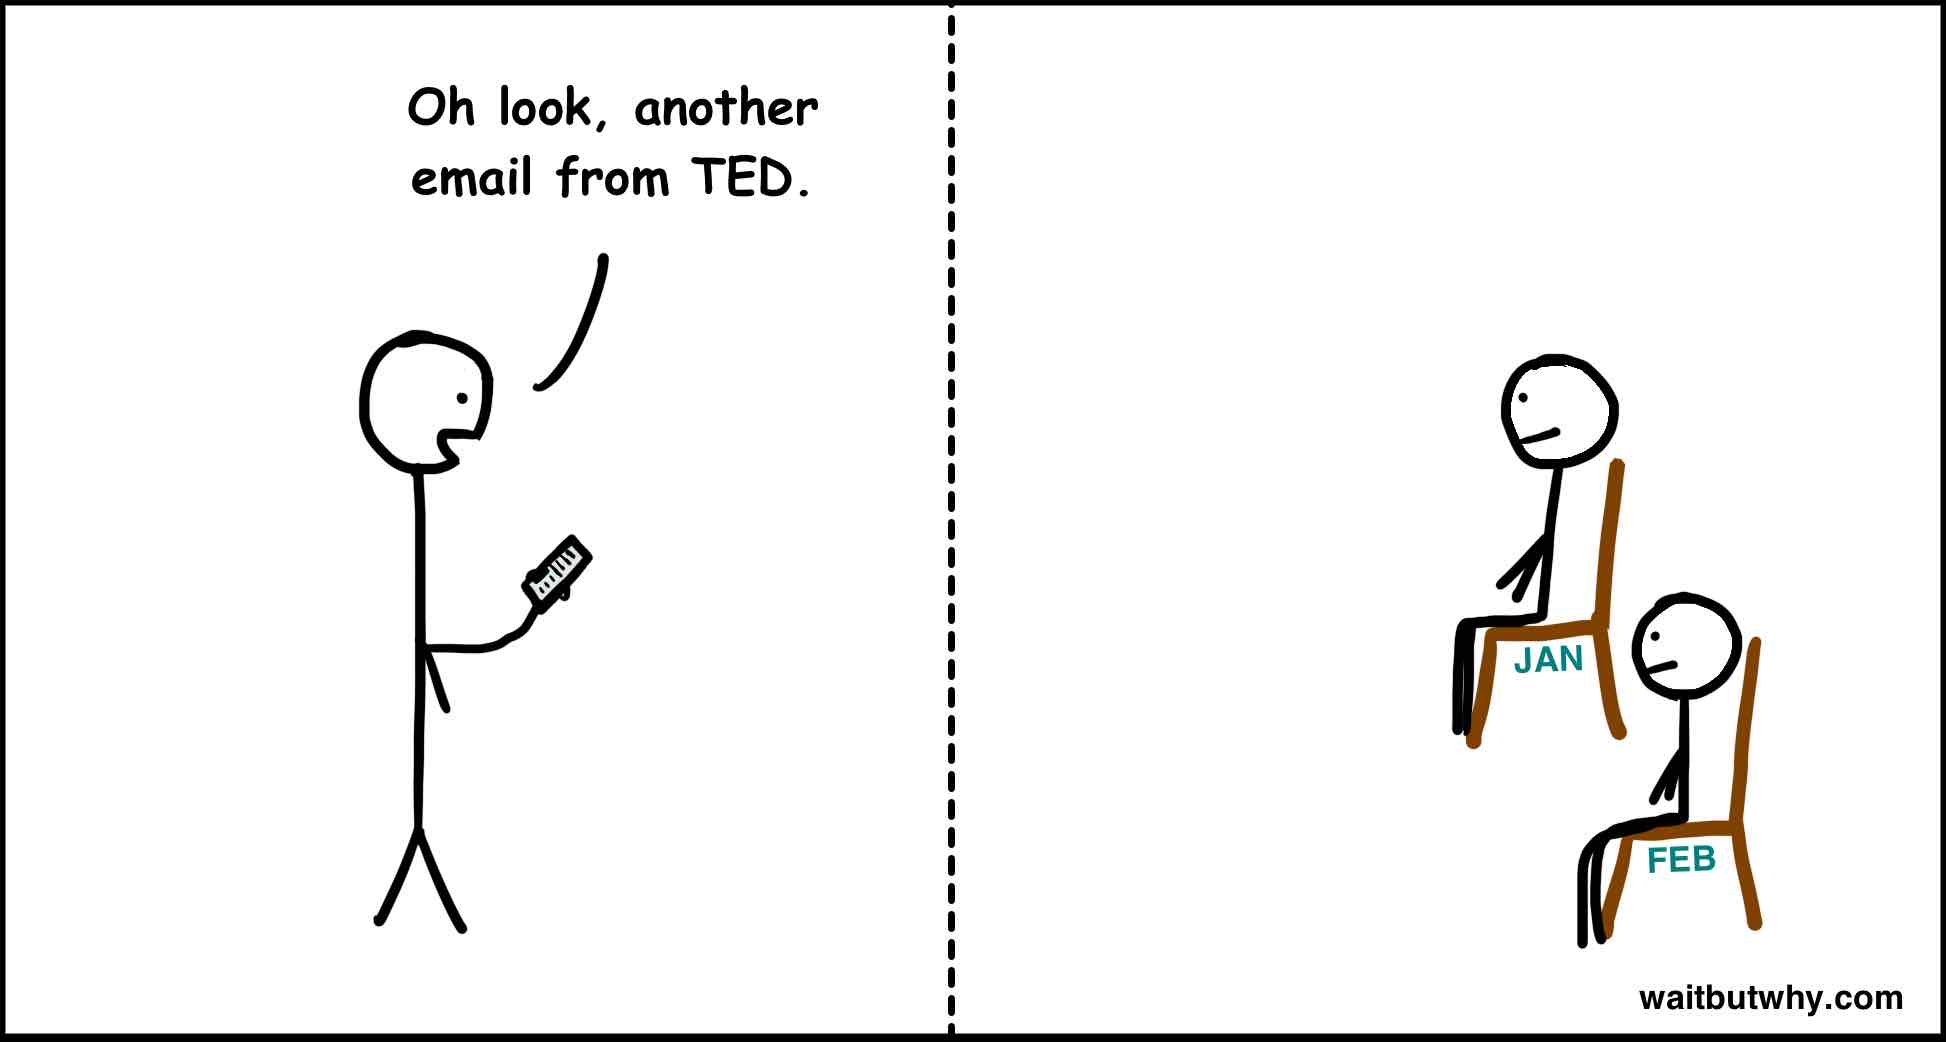 Dec: Oh look, another email from TED